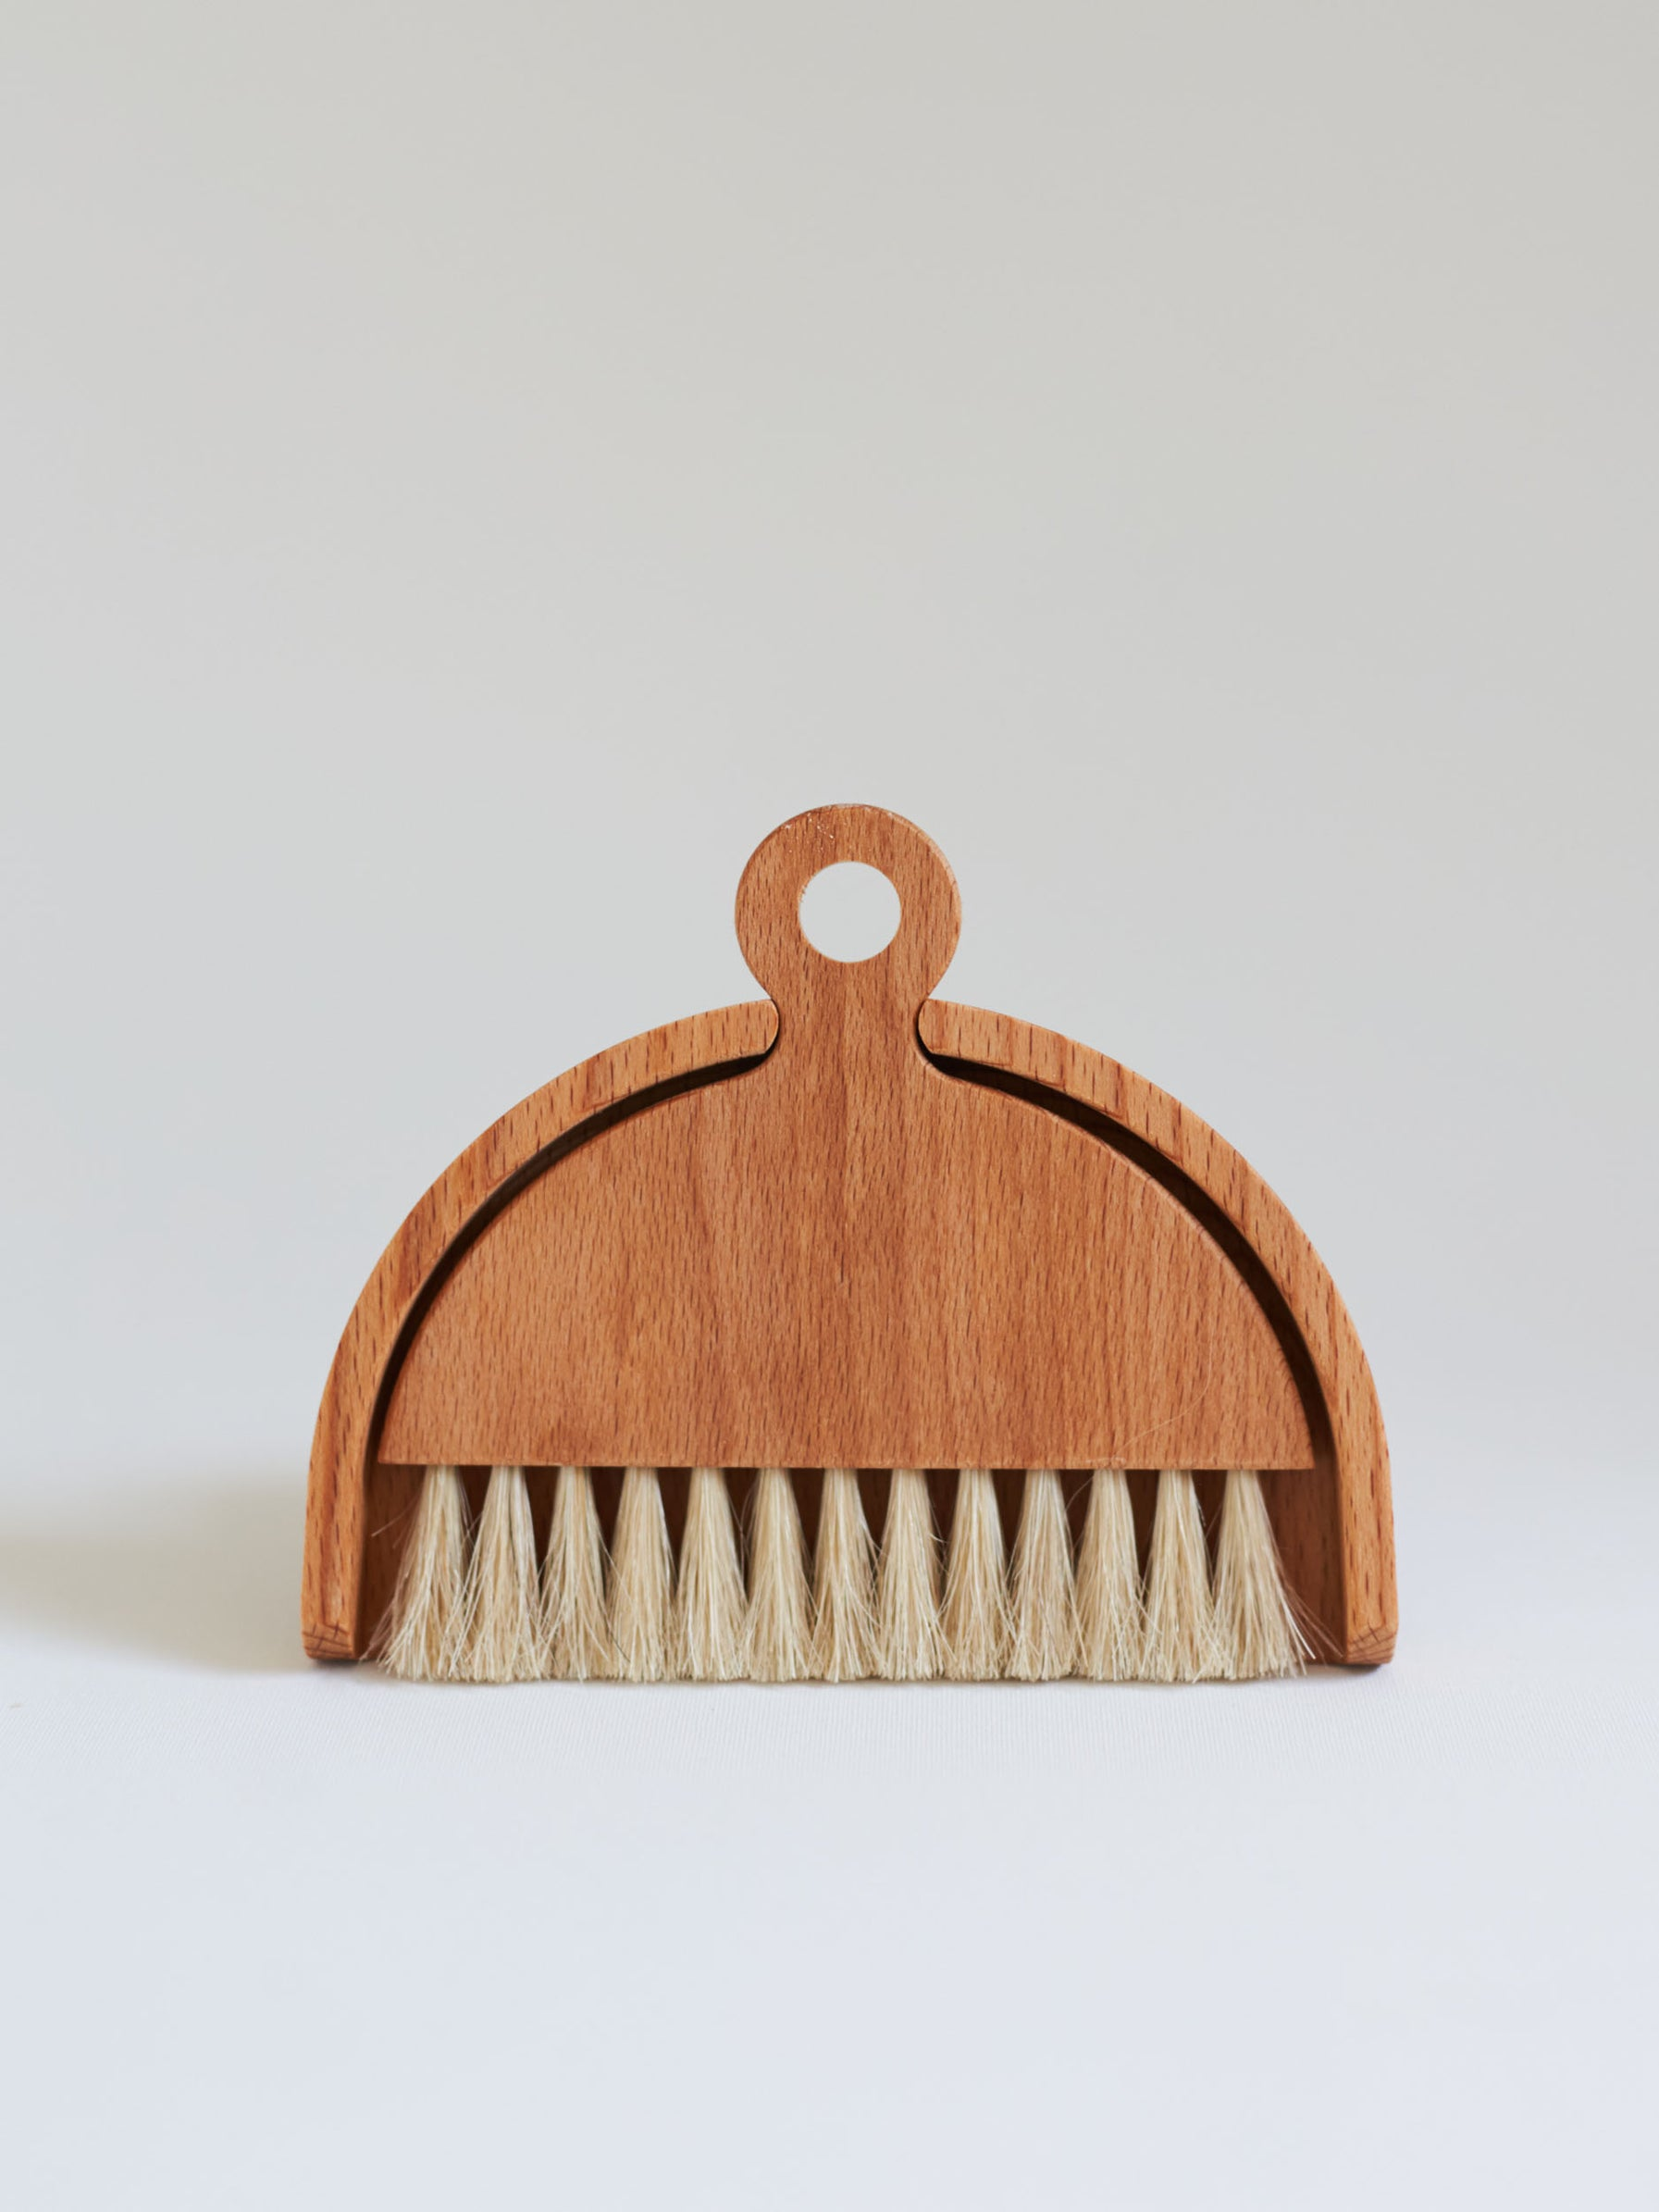 Iris Hantverk Sett of Table Brush 03